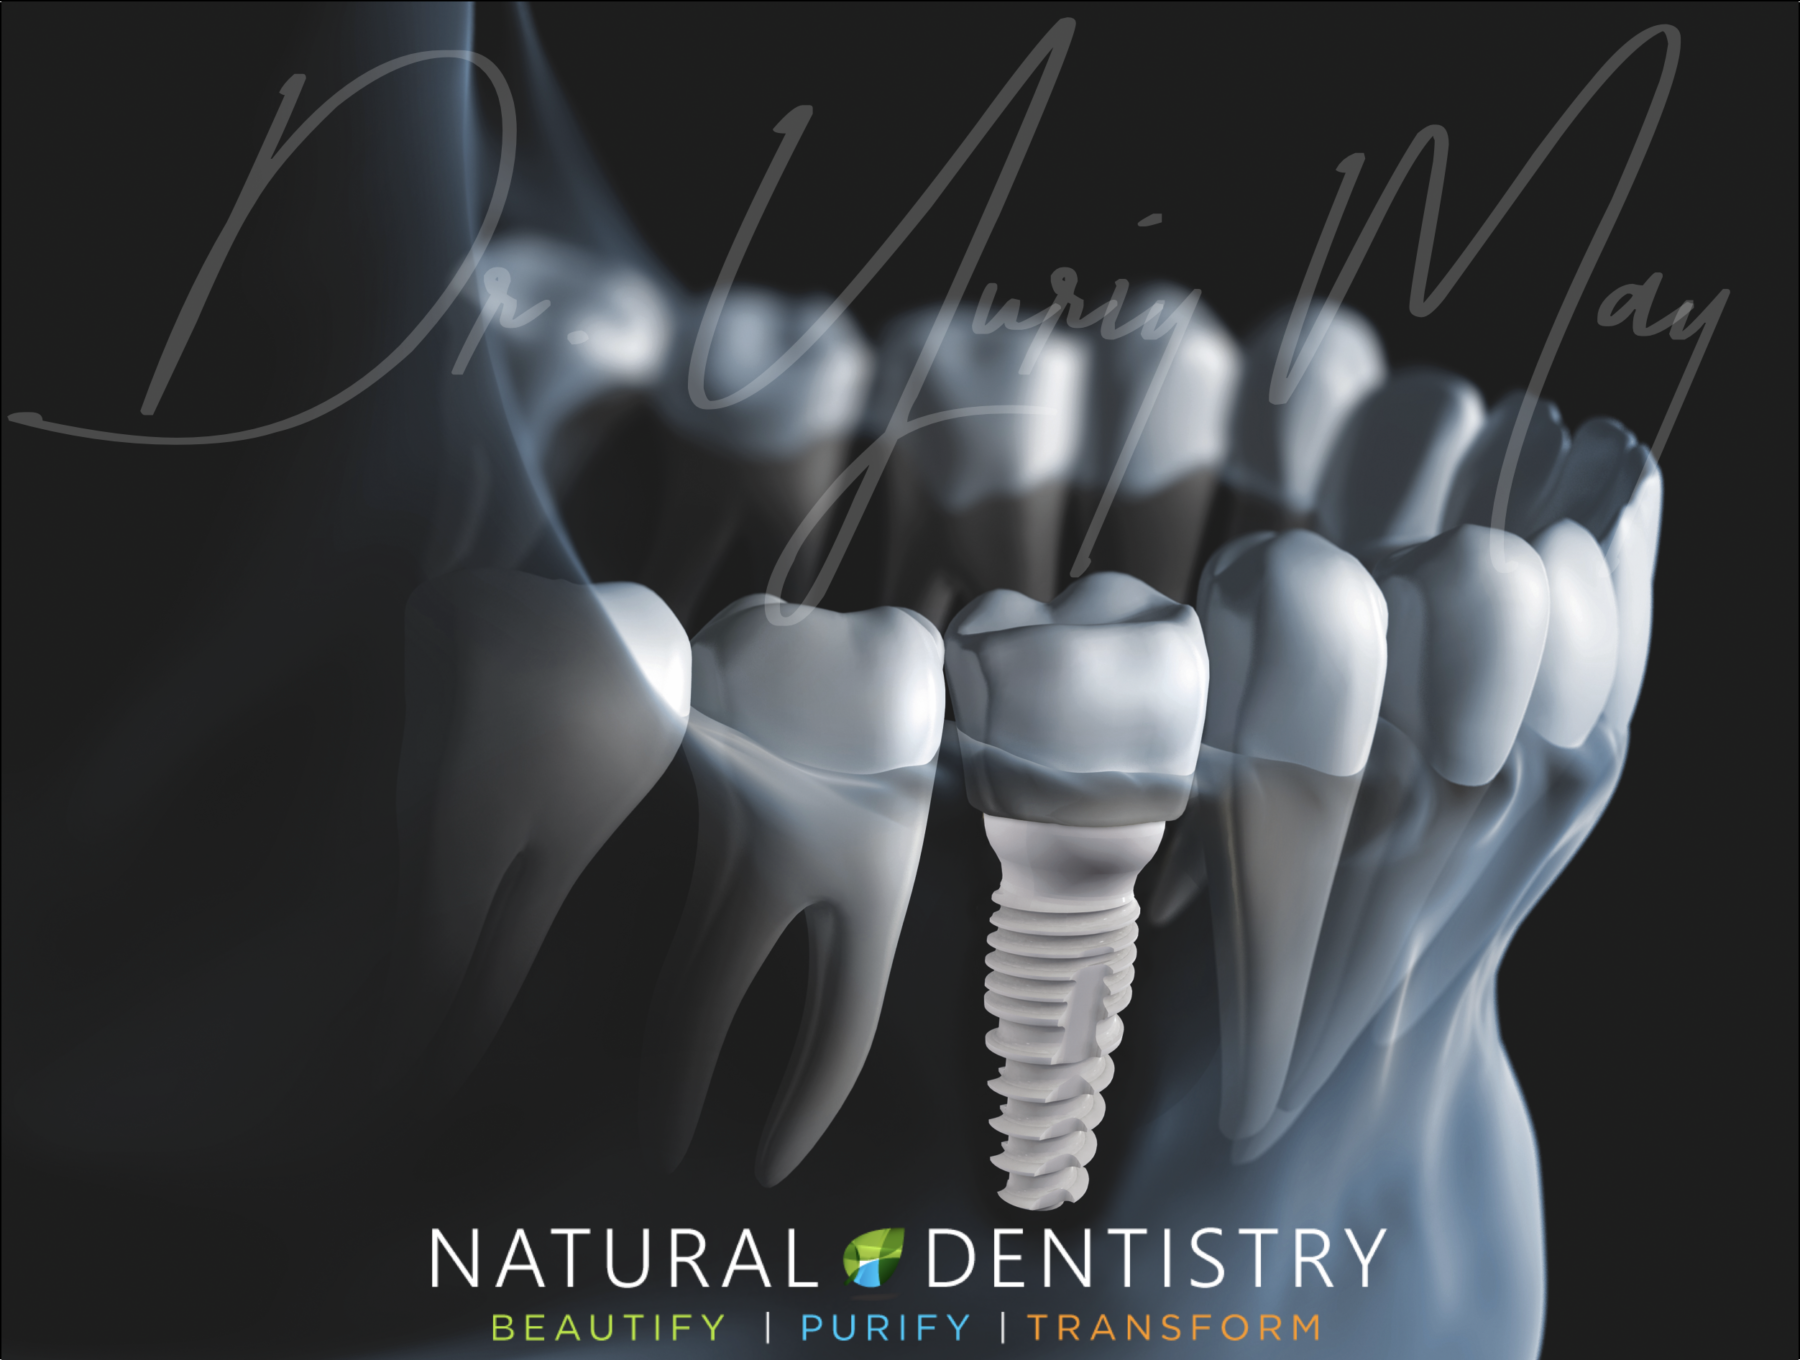 Zirconia Dental Implant Surgeon Dr. Yuriy May Ceramic Dental Implant Dentist USA CT NY NJ